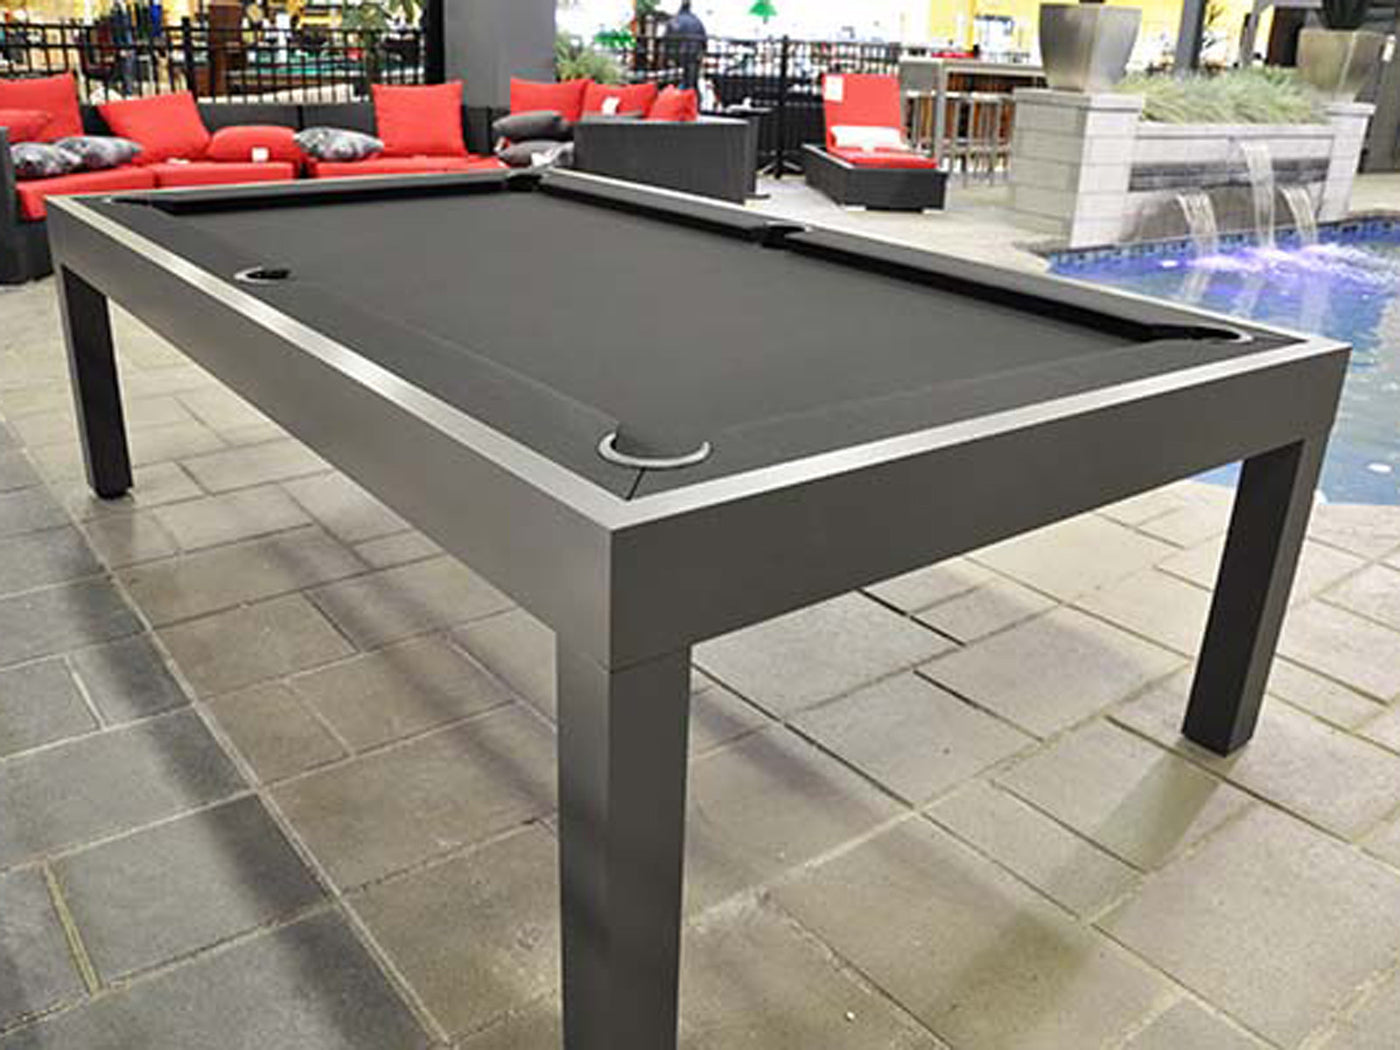 ... Storm Outdoor Pool Table Silver Gloss2 ...